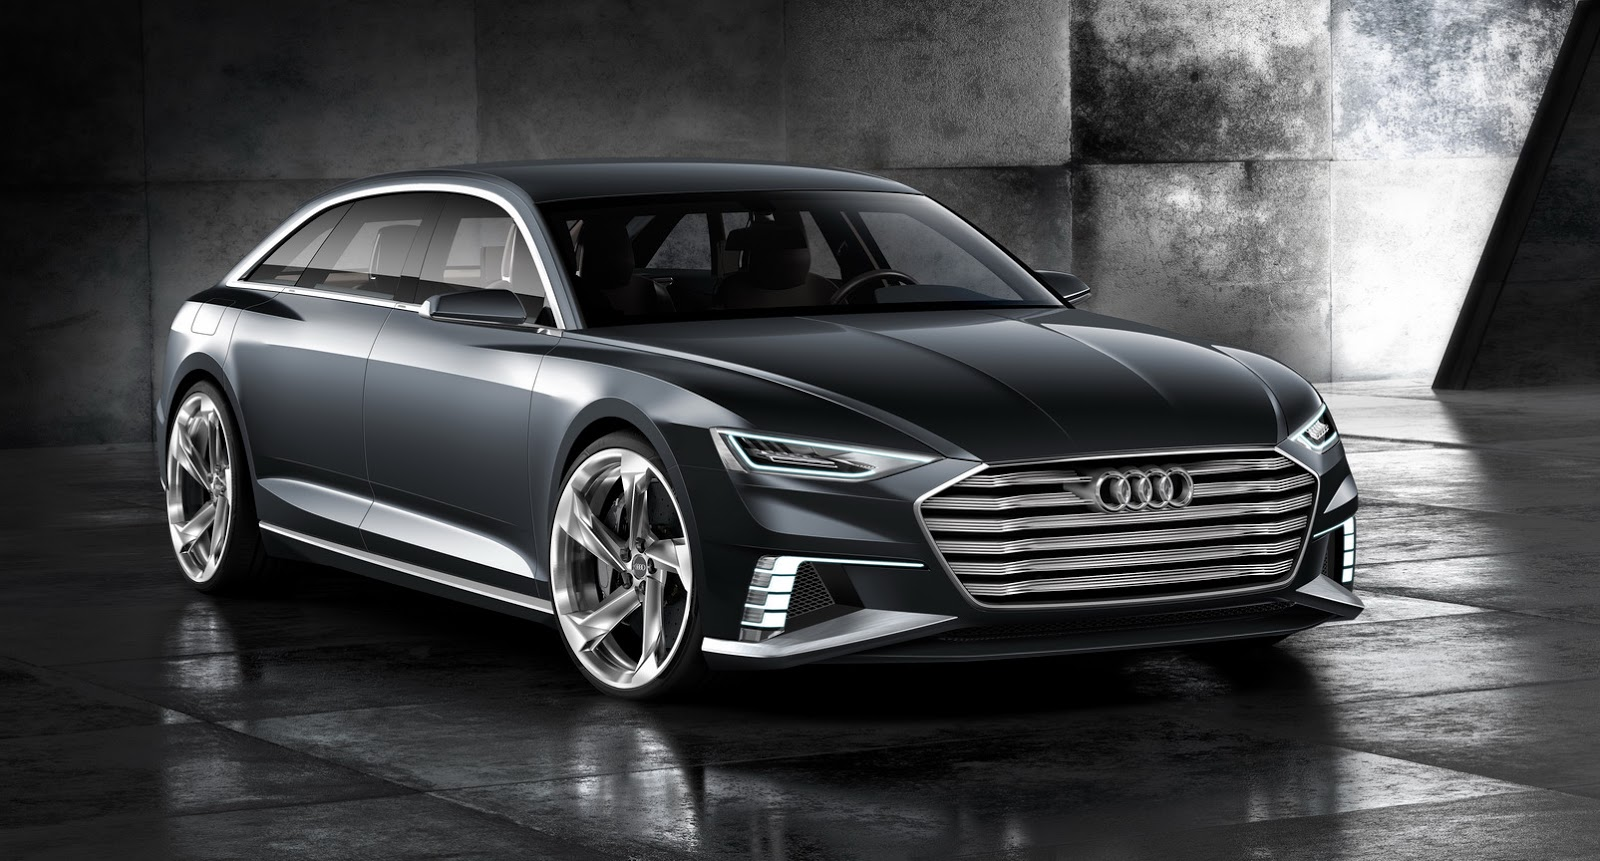 2018 audi electric car. contemporary electric 2015 audi prologue avant concept in 2018 audi electric car 0